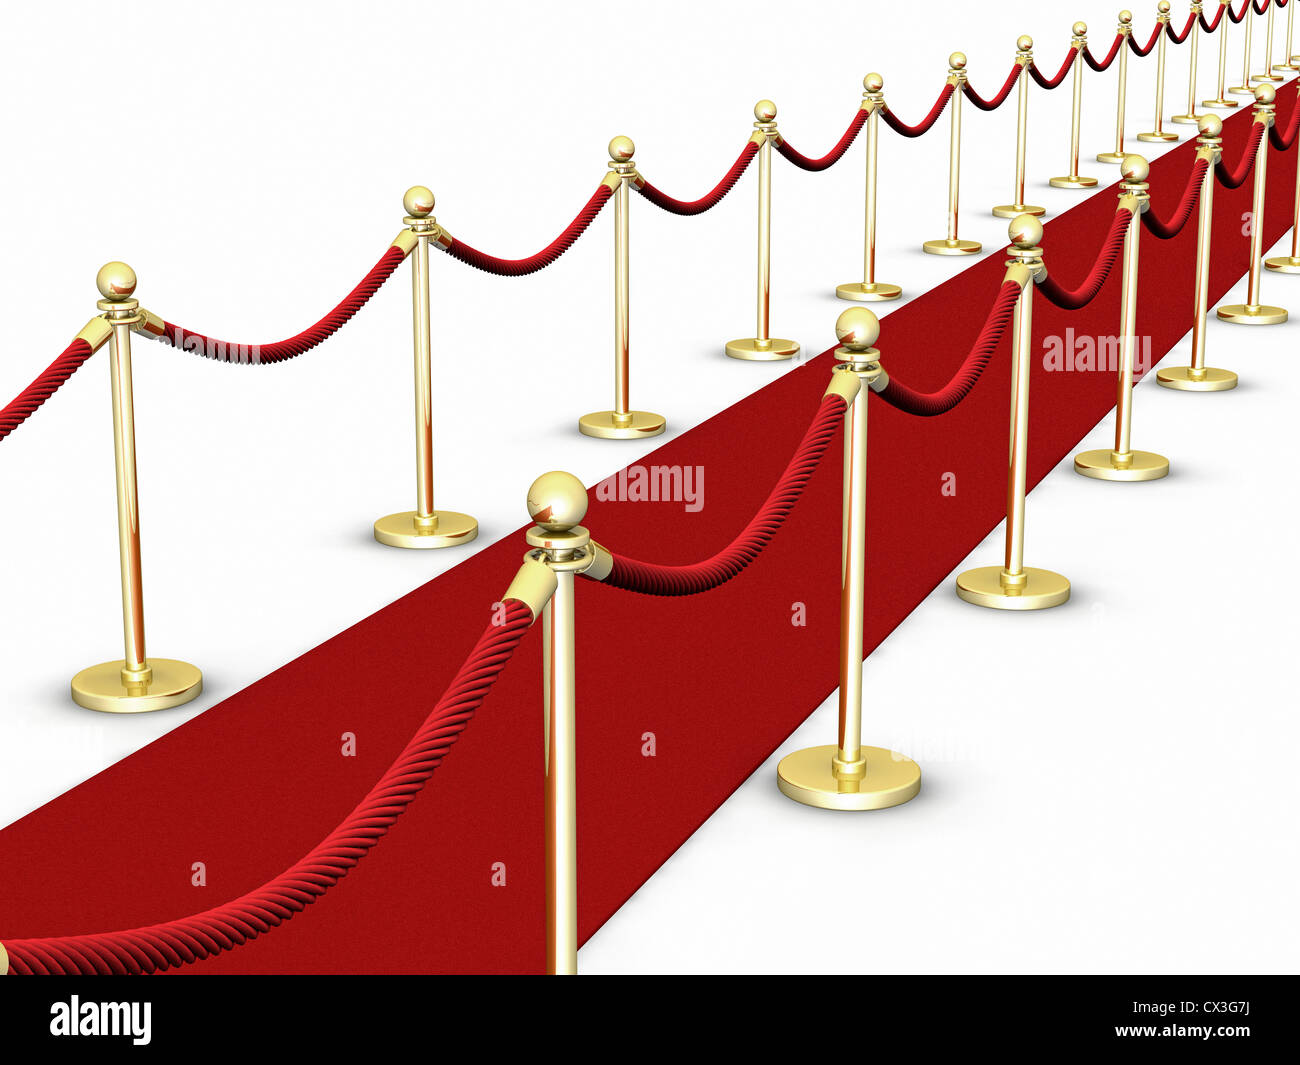 roter teppich mit absperrung auf wei red carpet and a rope or stockfoto lizenzfreies bild. Black Bedroom Furniture Sets. Home Design Ideas